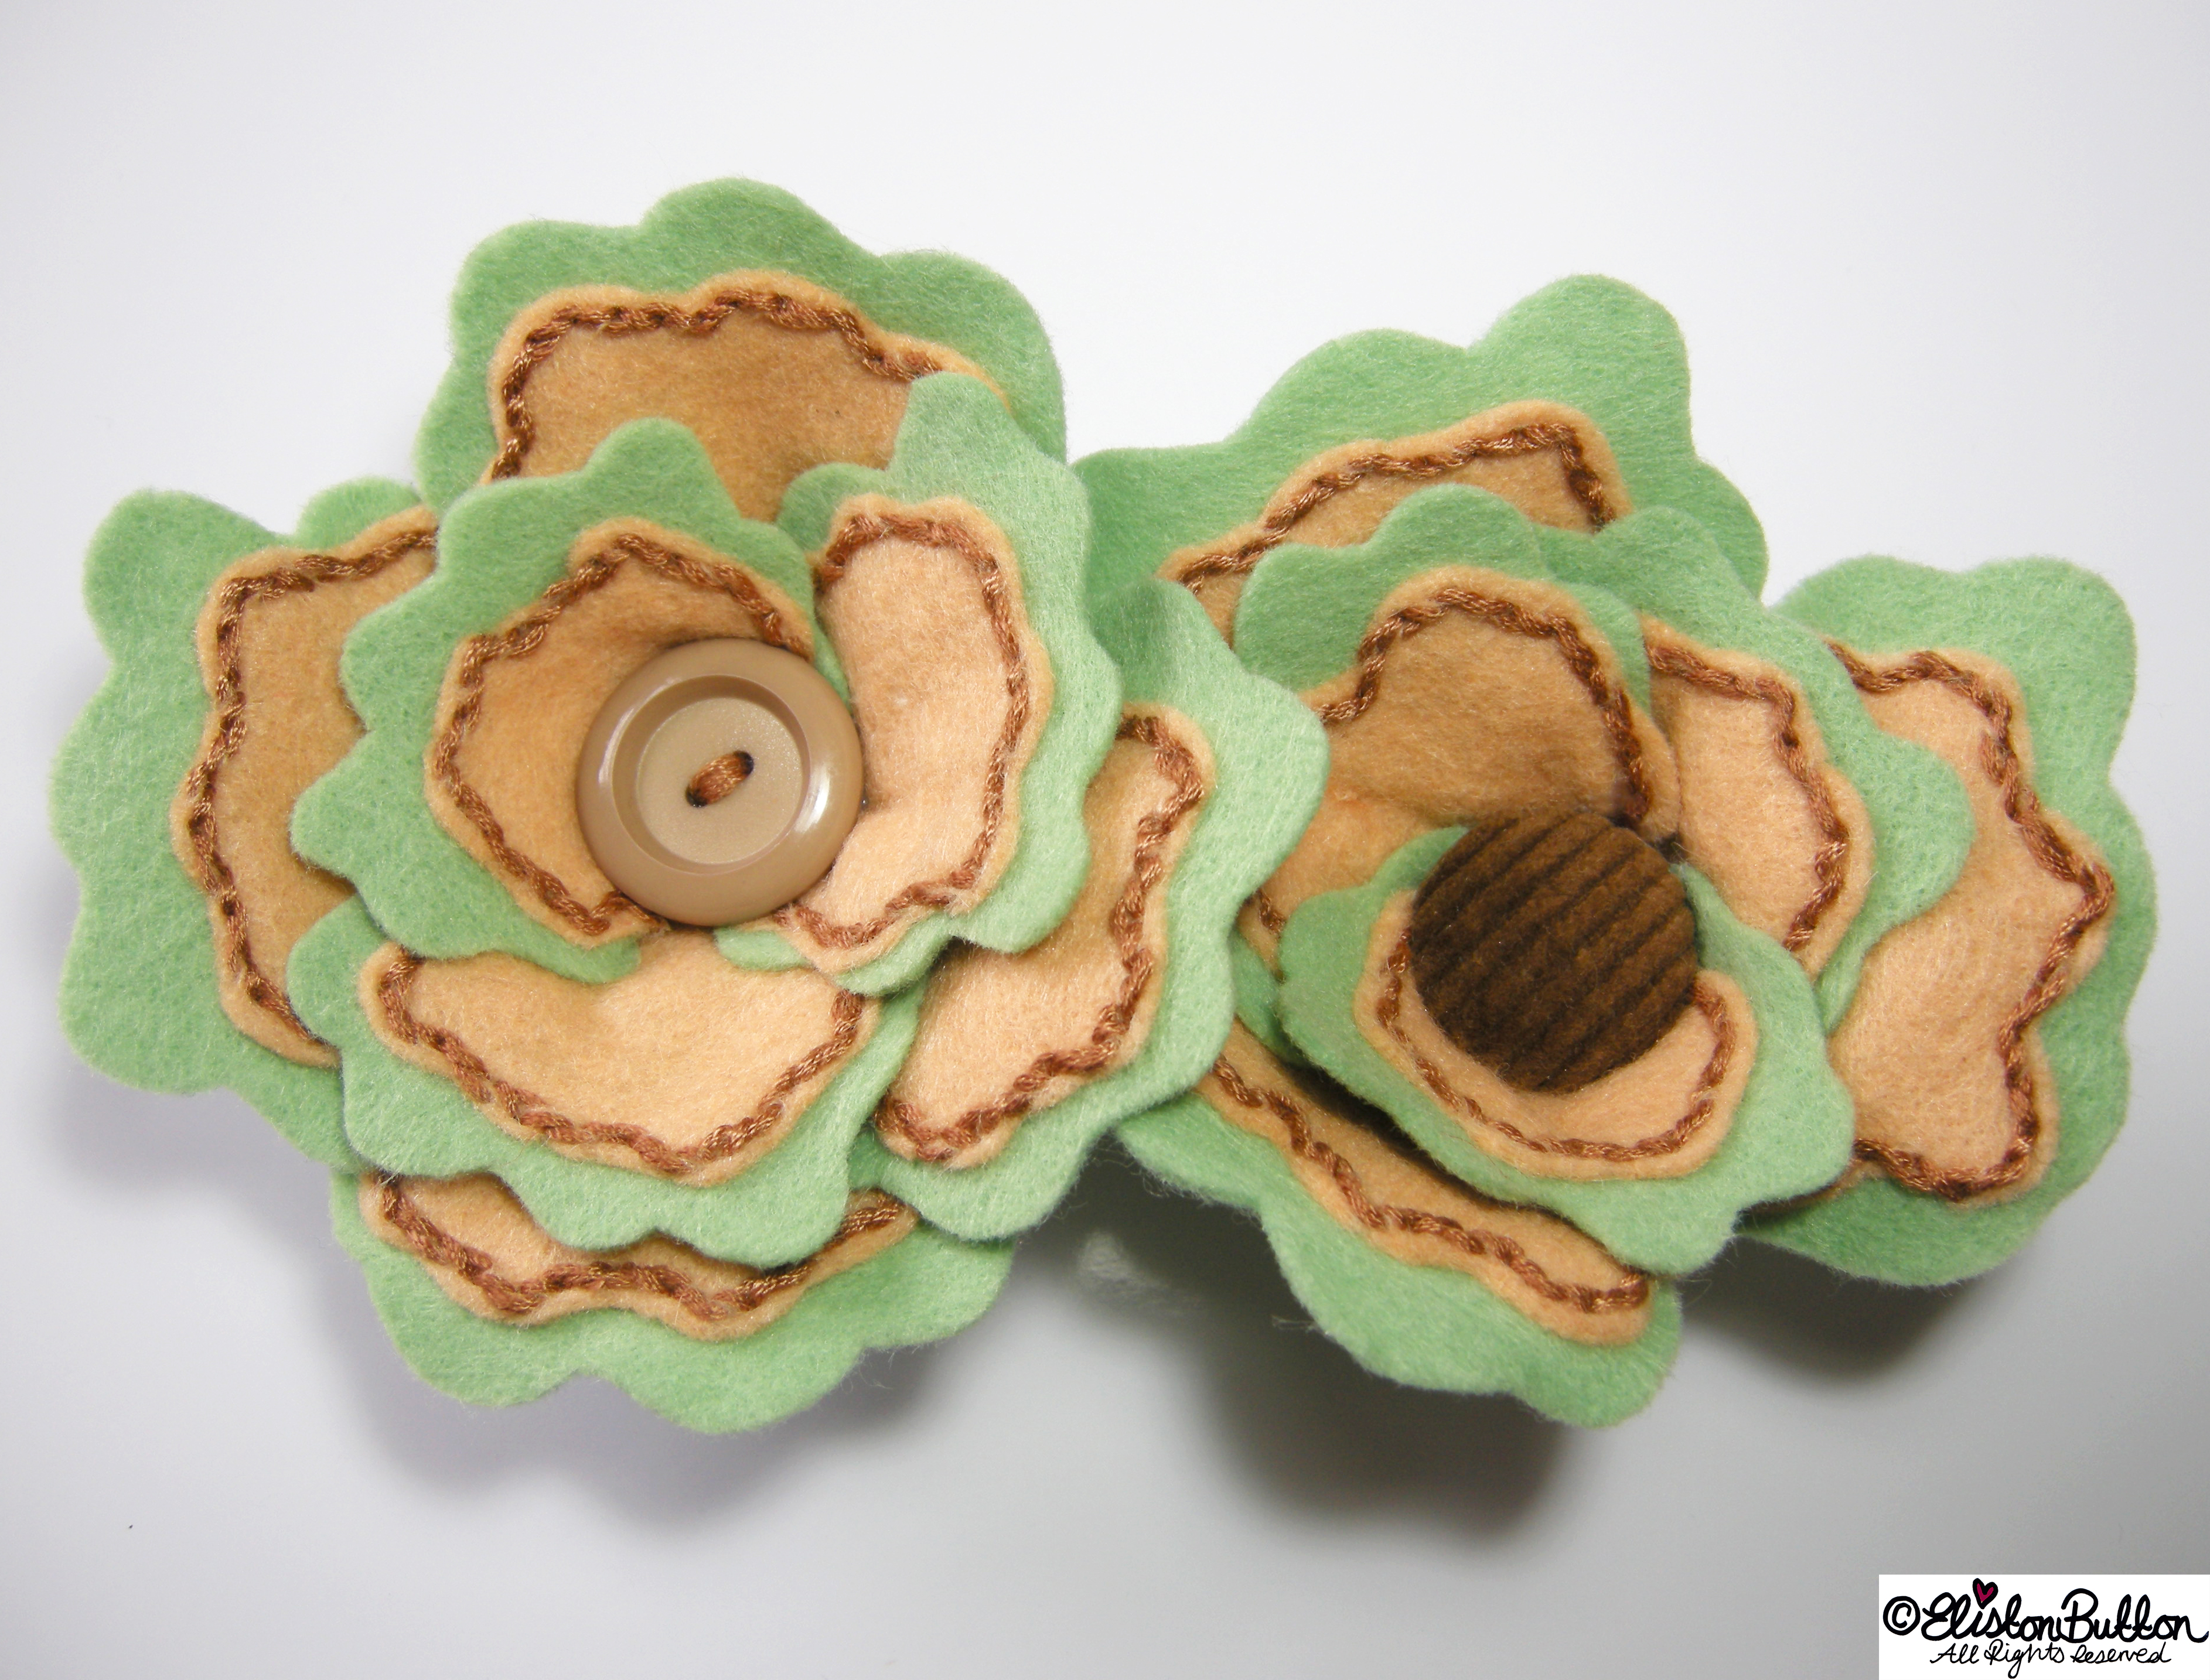 Sage and Onion Mint Green, Beige and Brown Felt Flower Brooches - 27 Before 27 - Sage & Onion at www.elistonbutton.com - Eliston Button - That Crafty Kid – Art, Design, Craft & Adventure.